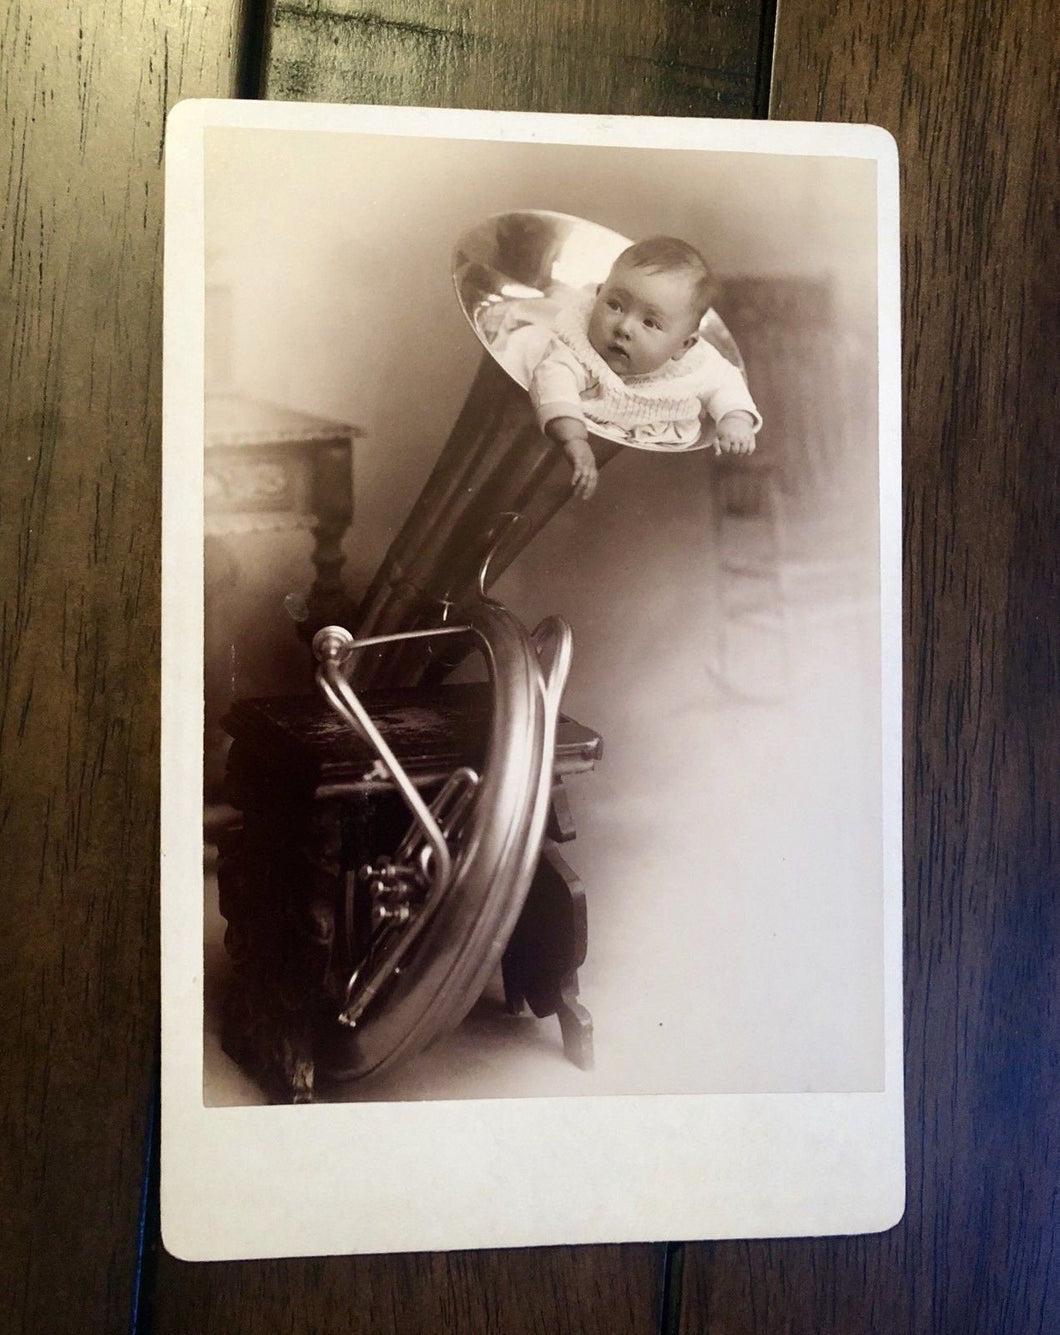 Really Weird & Unique Cabinet Card Photo - Baby Stuffed In Tuba!